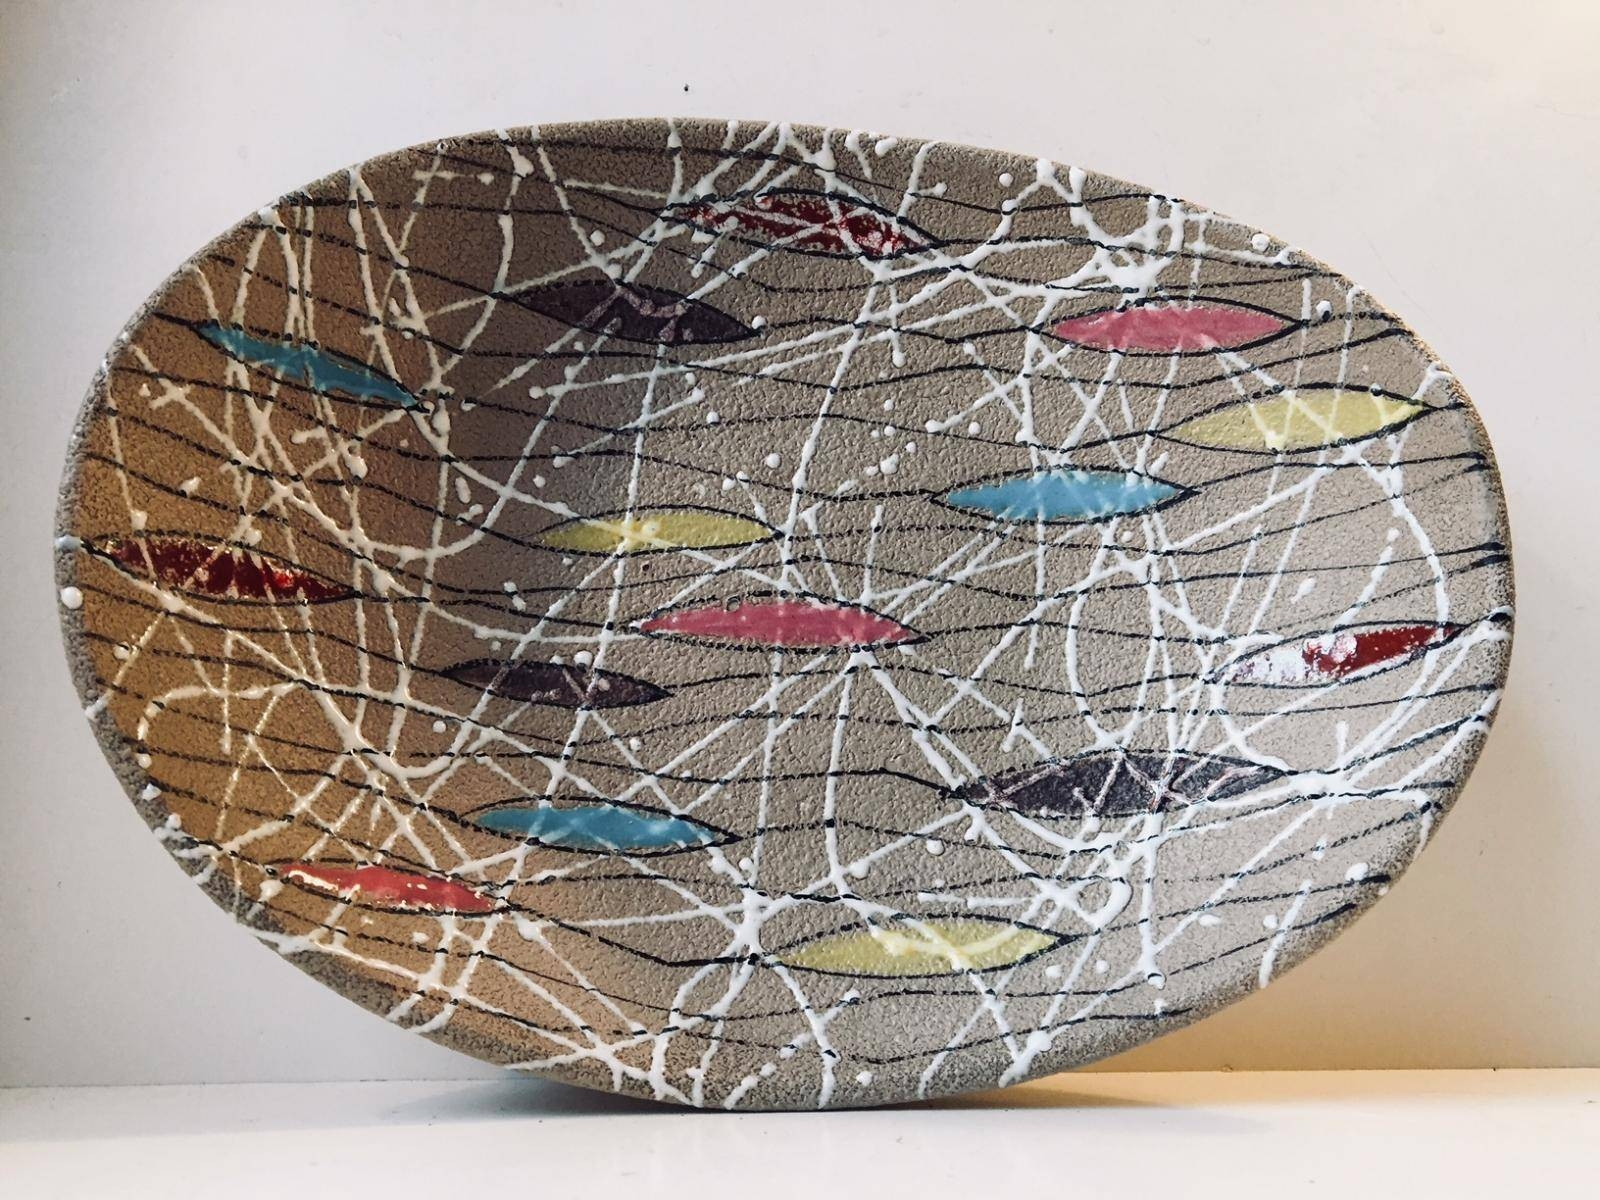 Multicolored Italian Modernist Ceramic Bowlfratelli Intended For Current Italian Ceramic Wall Art (View 21 of 30)